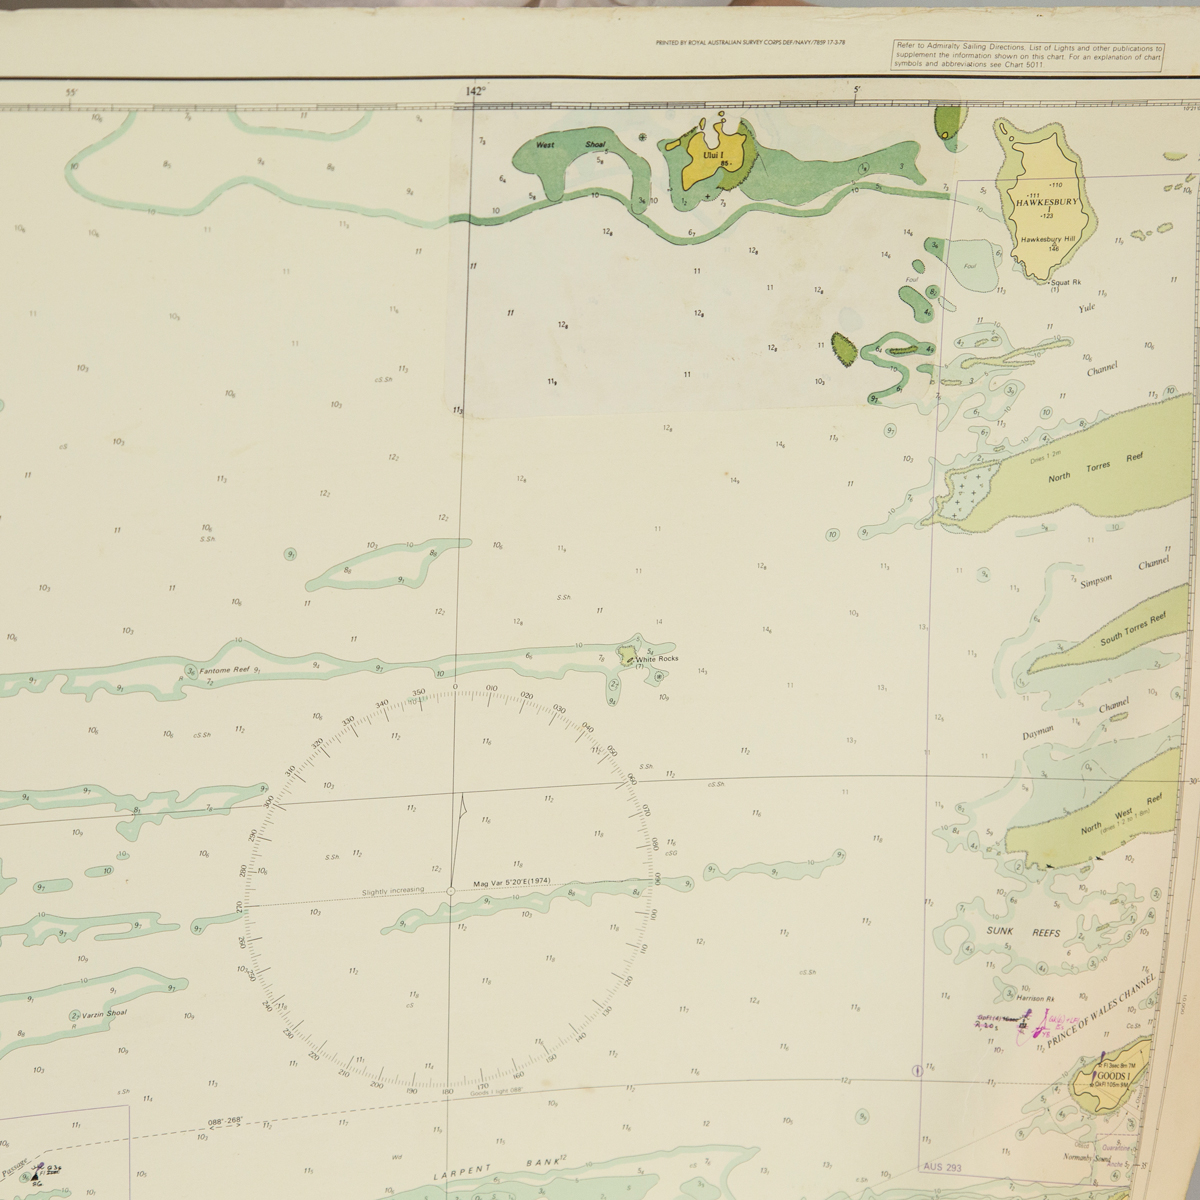 Torres Strait - Goods Island to Proudfoot Shoal Chart/Map (charted)